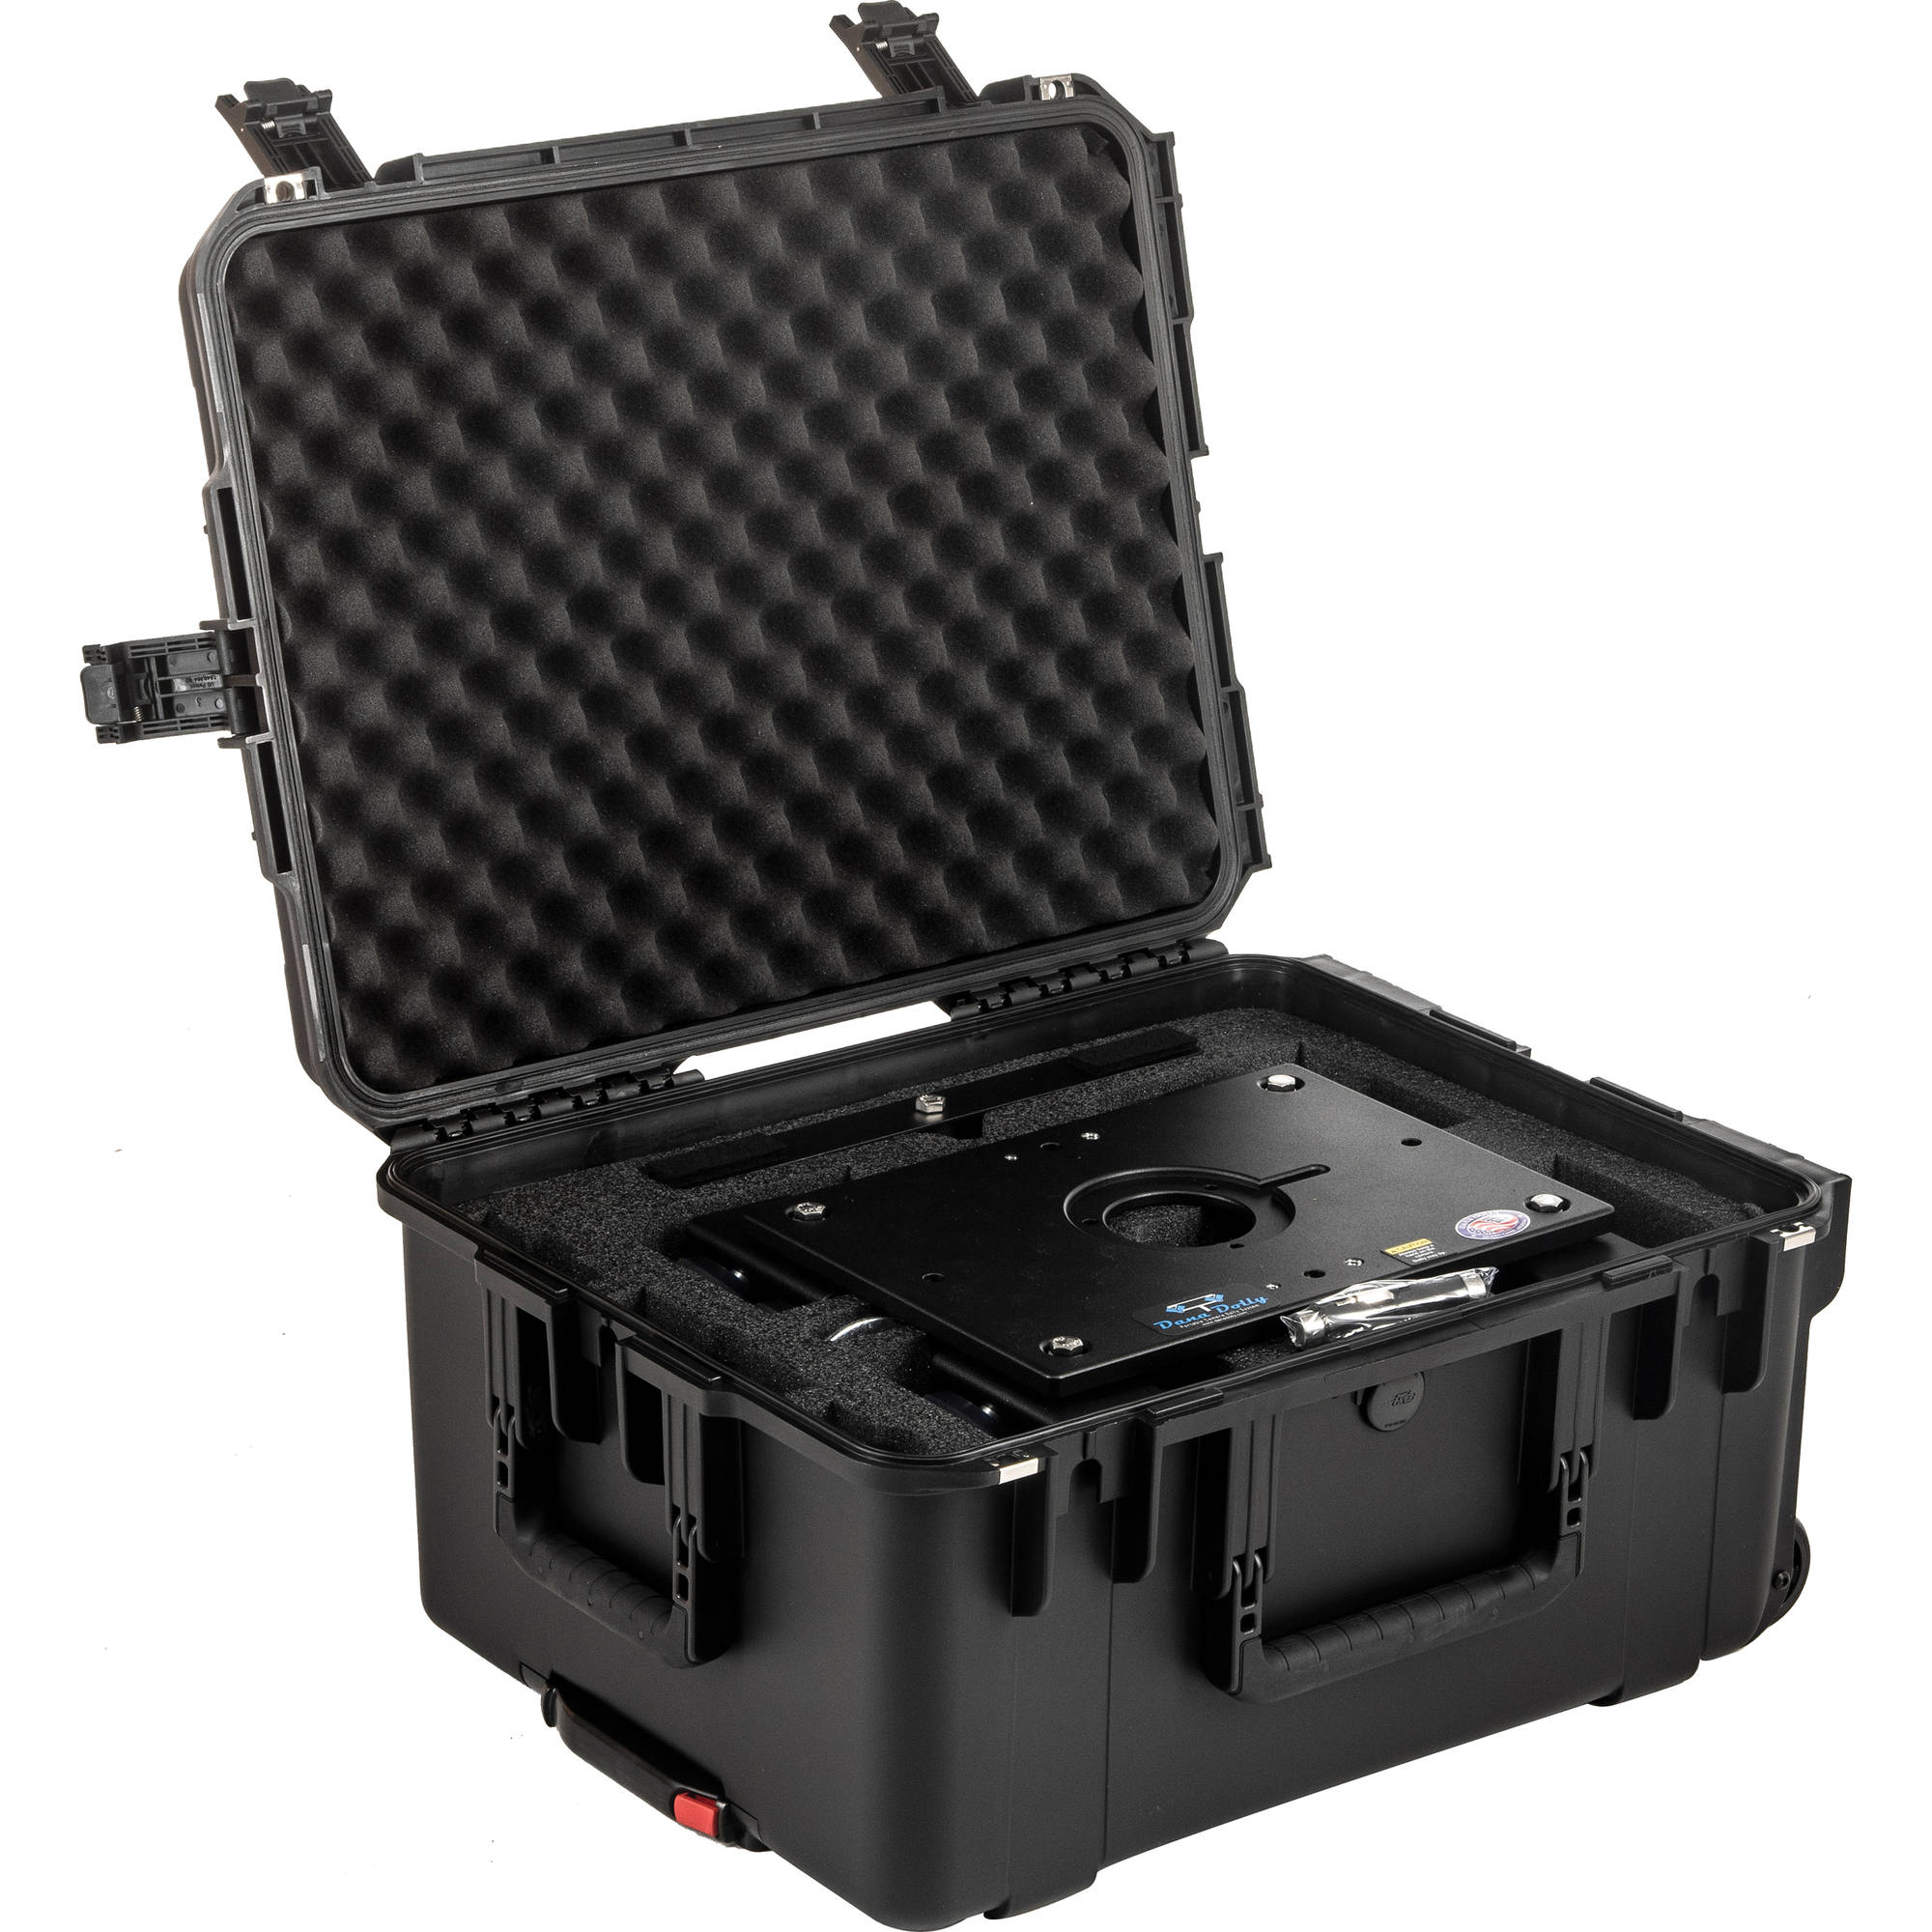 f9e1b2810a17 Dana Dolly Portable Dolly System Rental Kit with Universal Track Ends